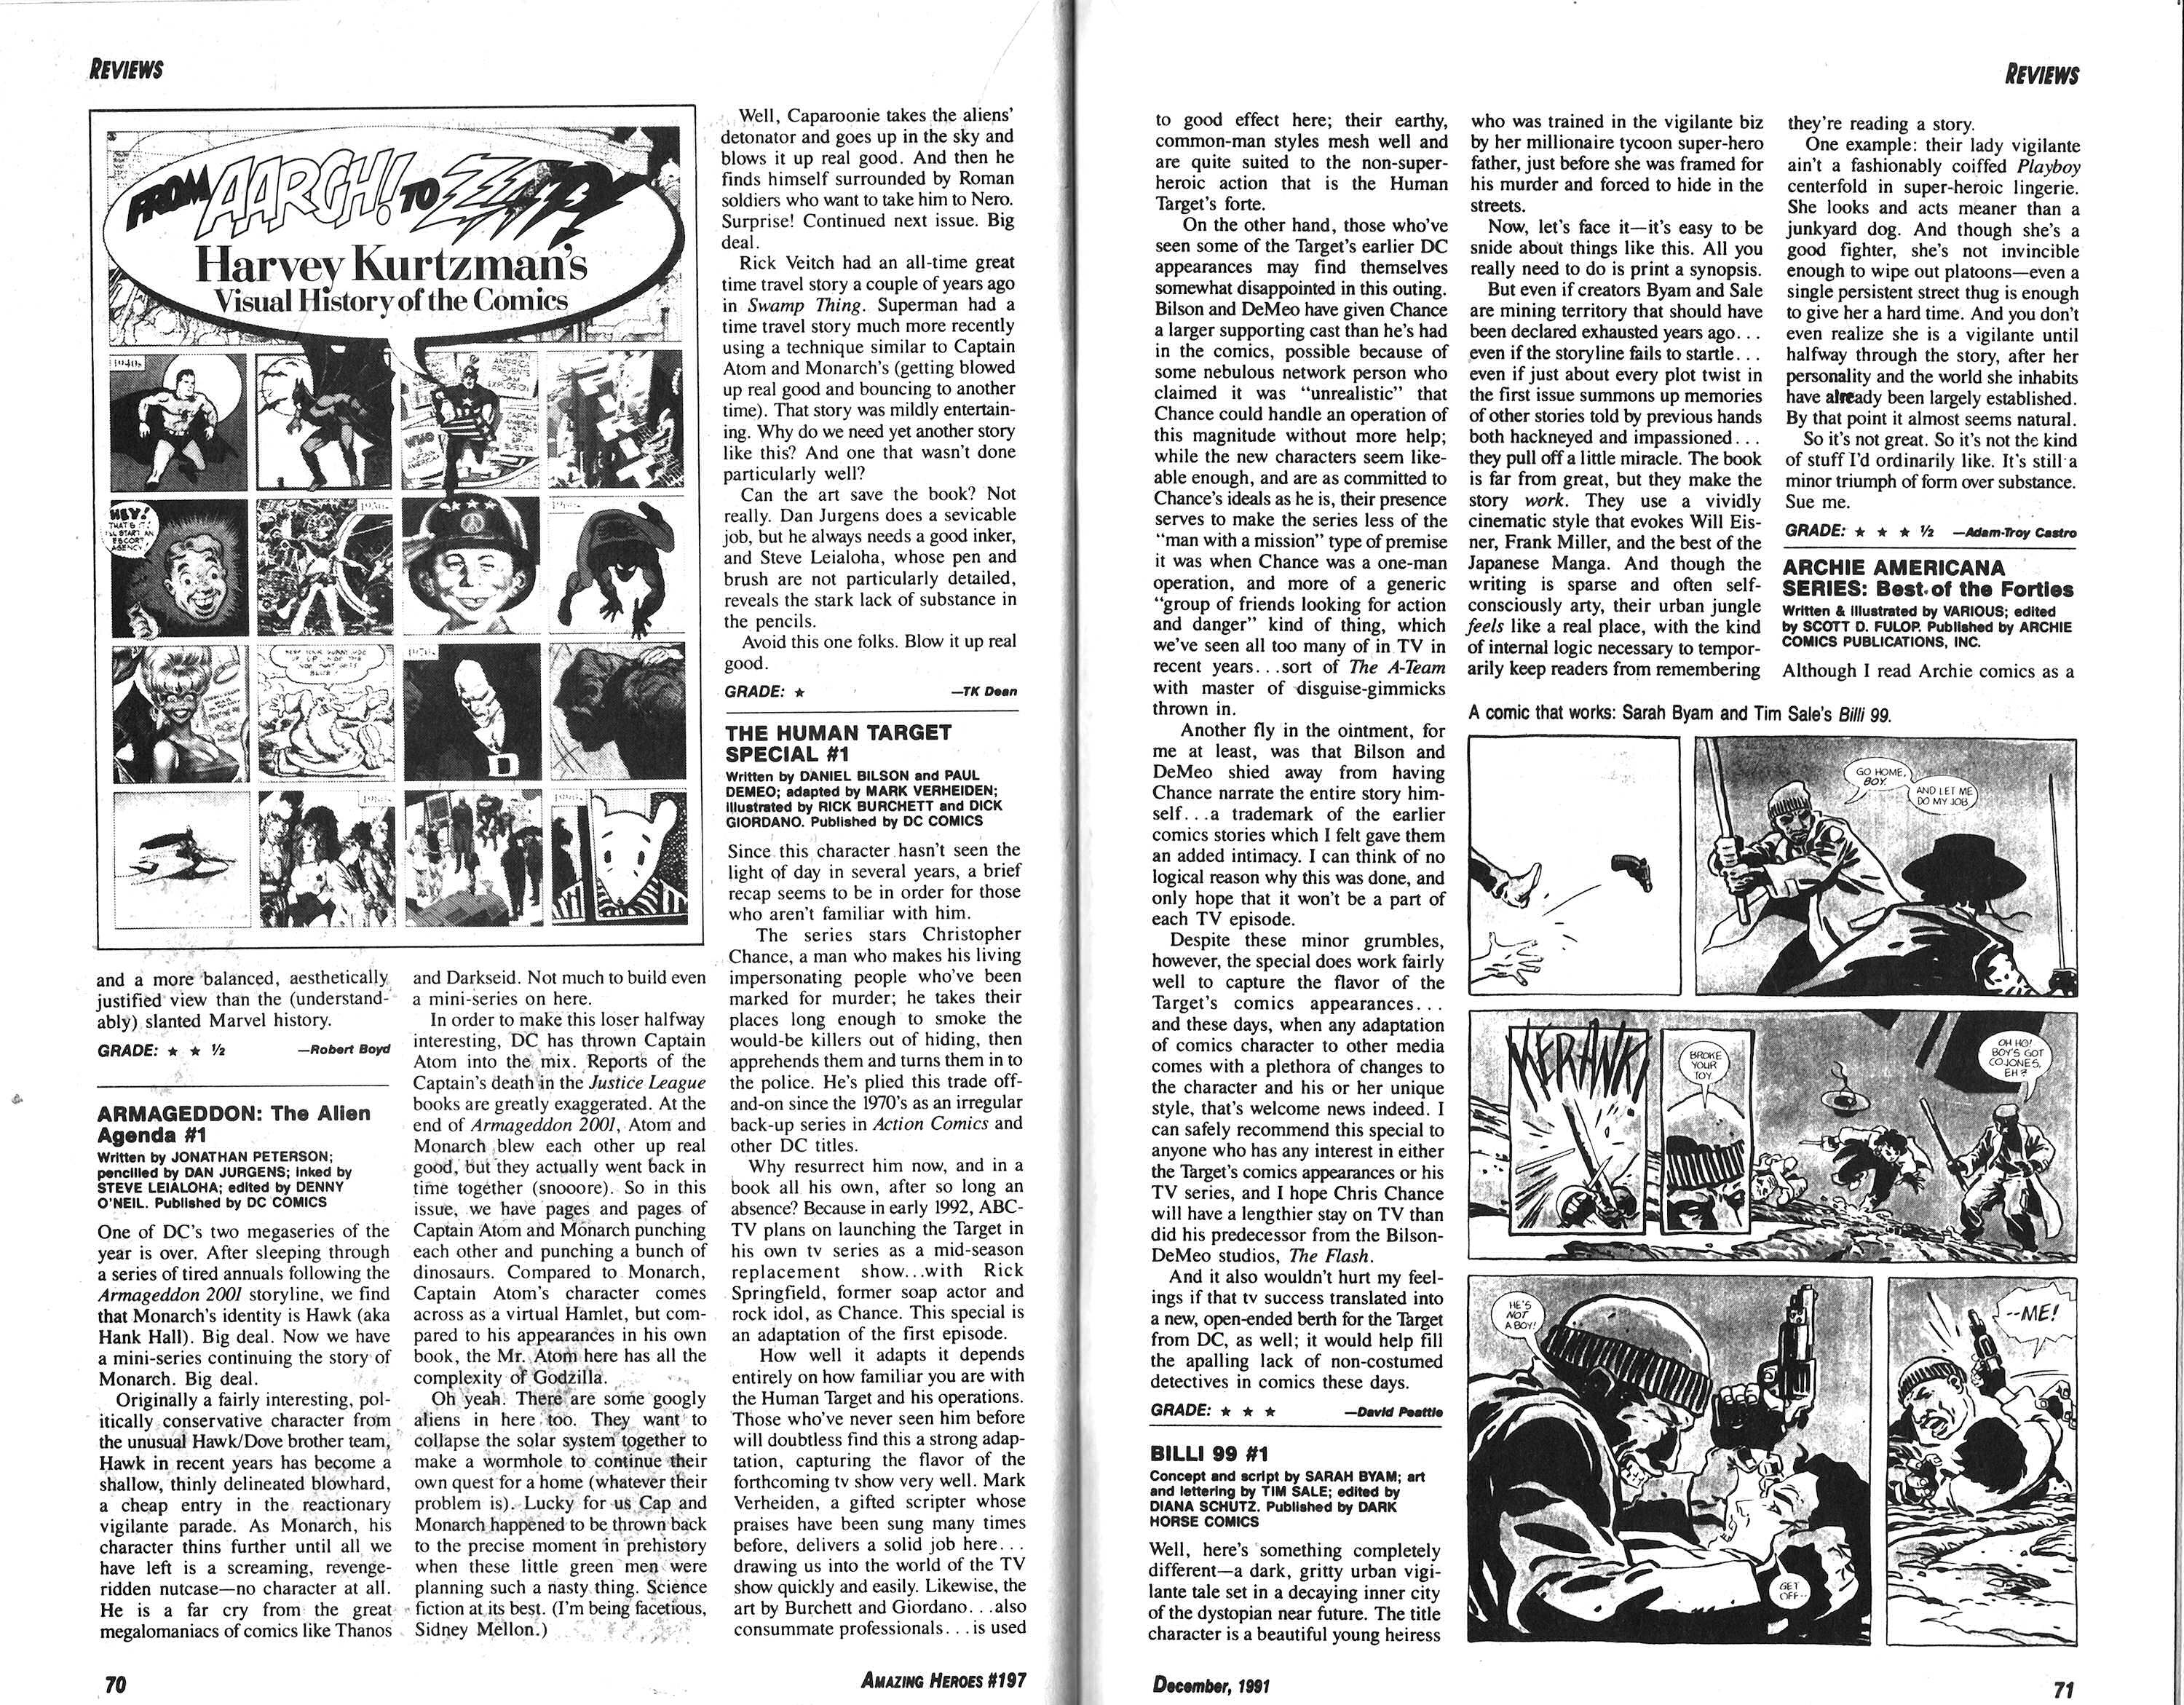 Read online Amazing Heroes comic -  Issue #197 - 36